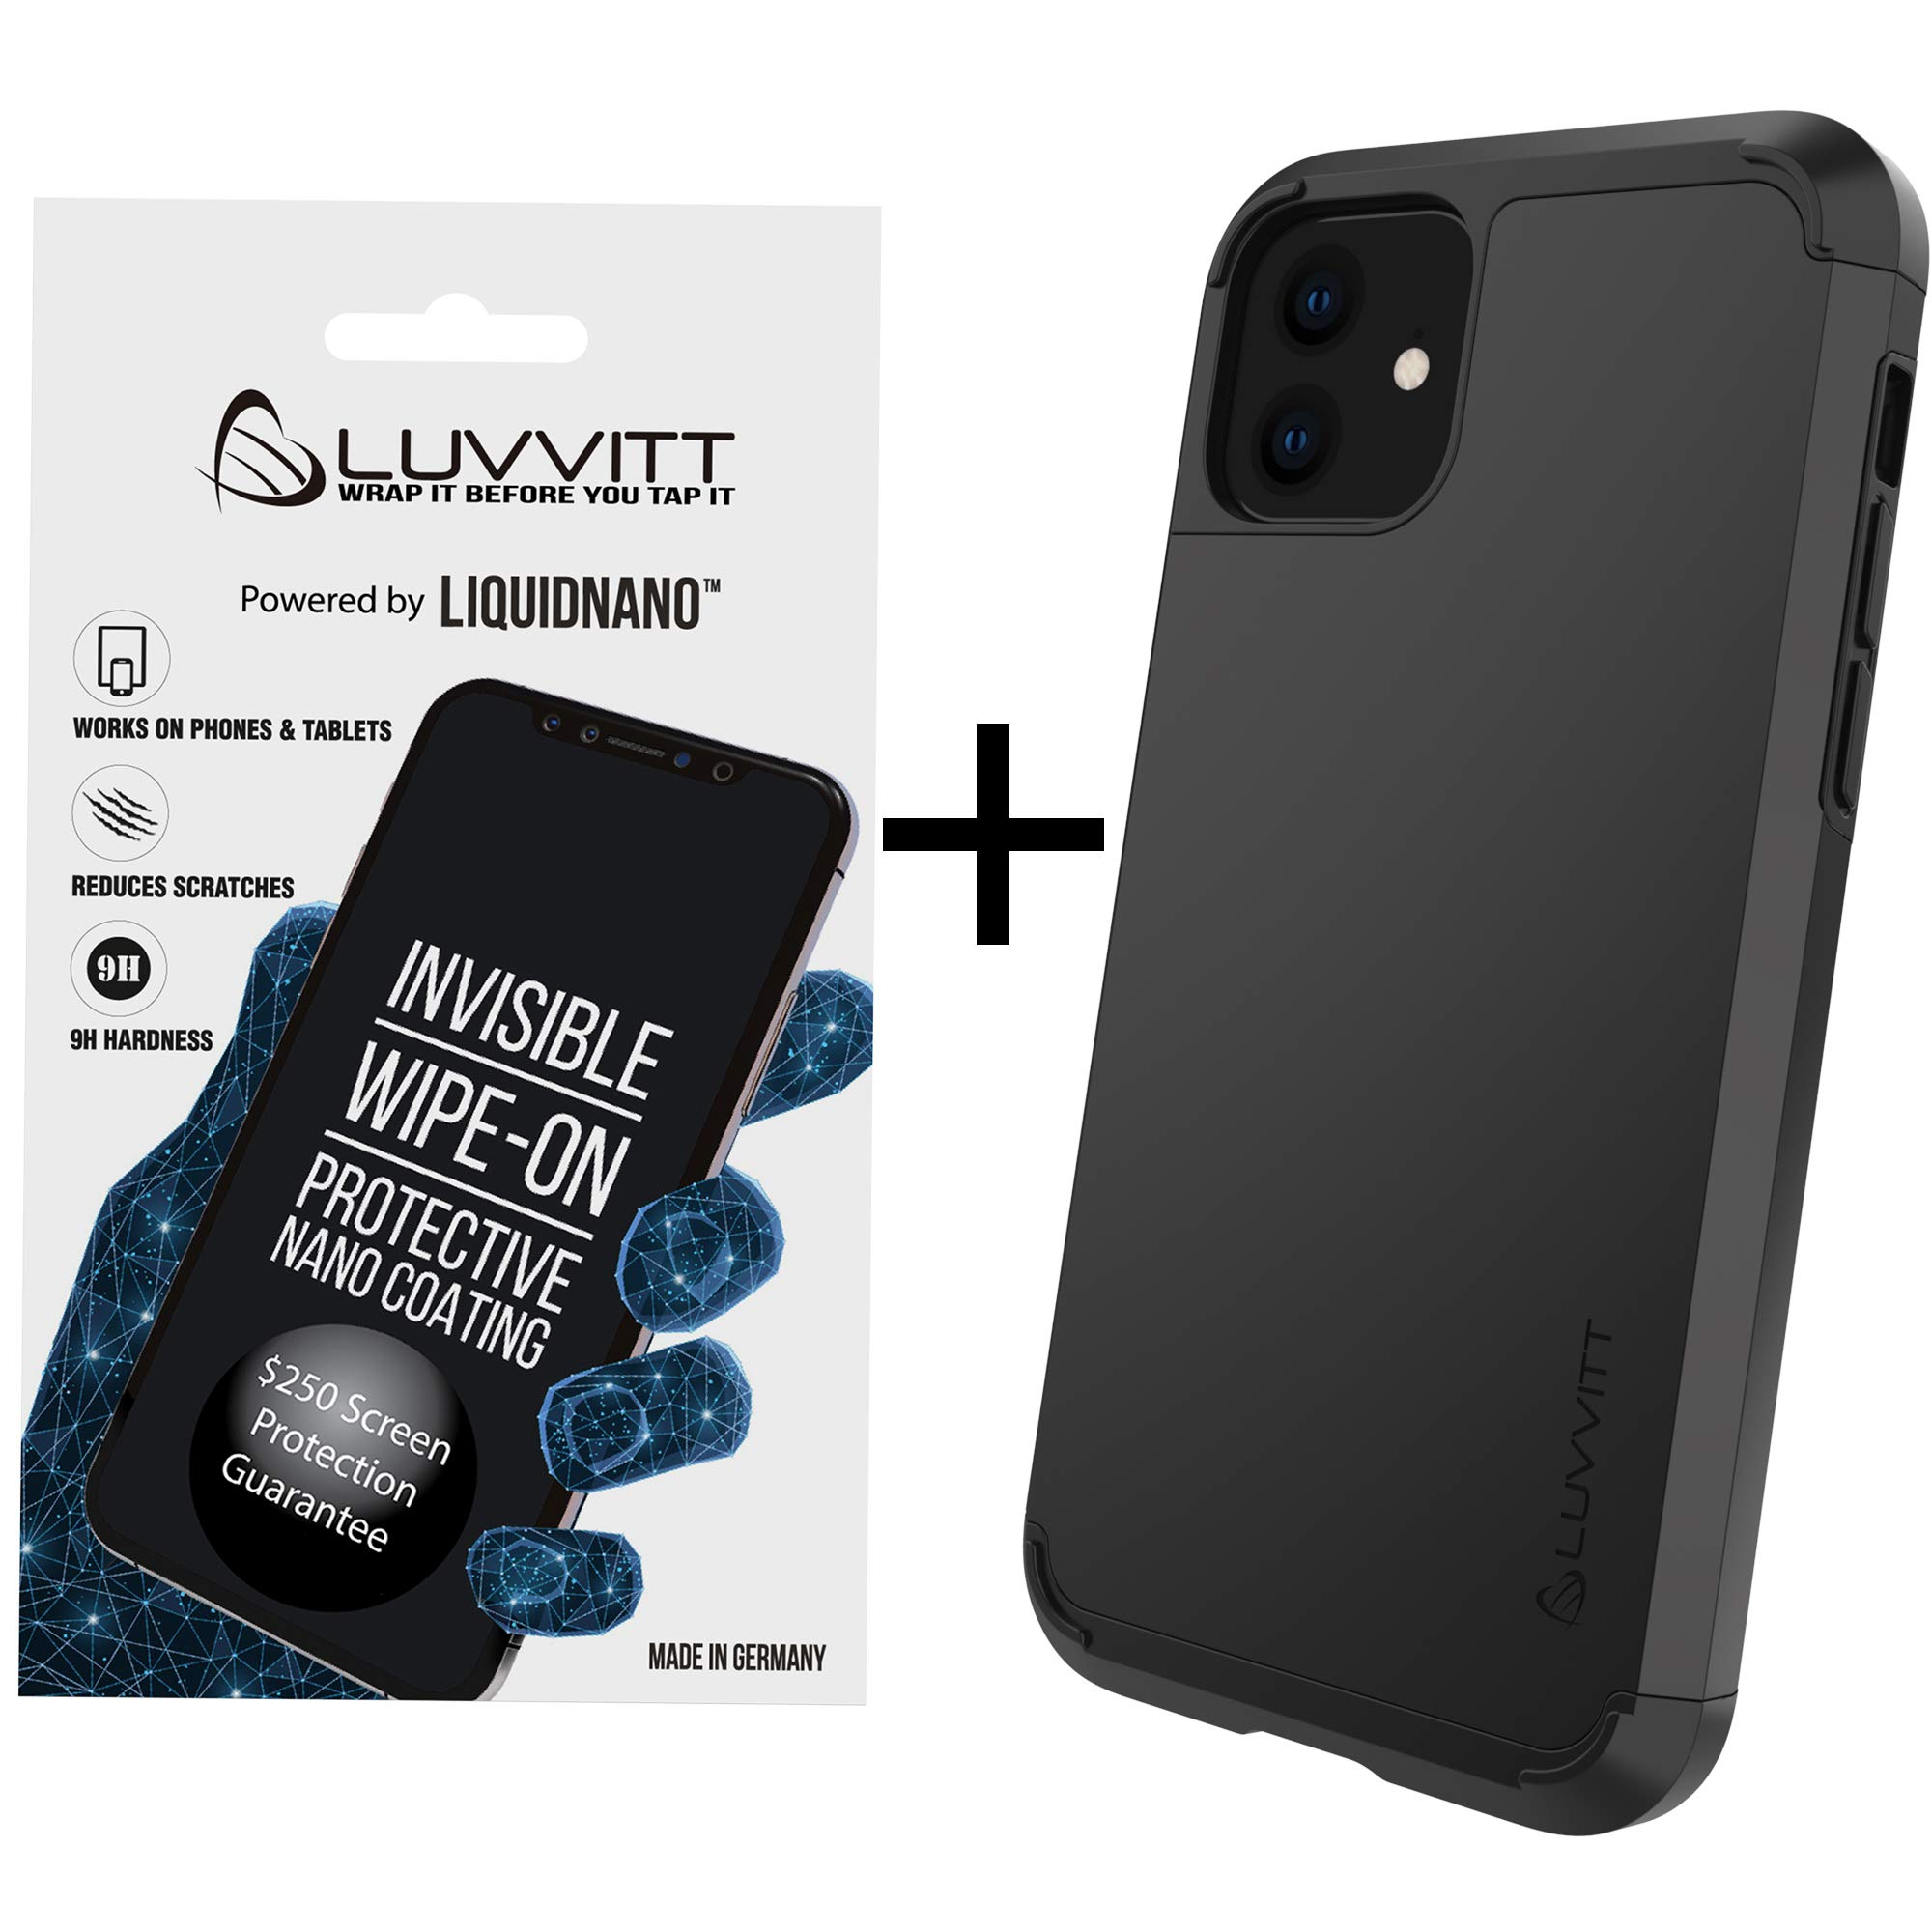 Luvvitt $250 Screen Replacement Guarantee Ultra Armor Case and Liquid Glass Screen Protector Bundle for iPhone 11 XI with 6.1 inch Screen 2019 - Black